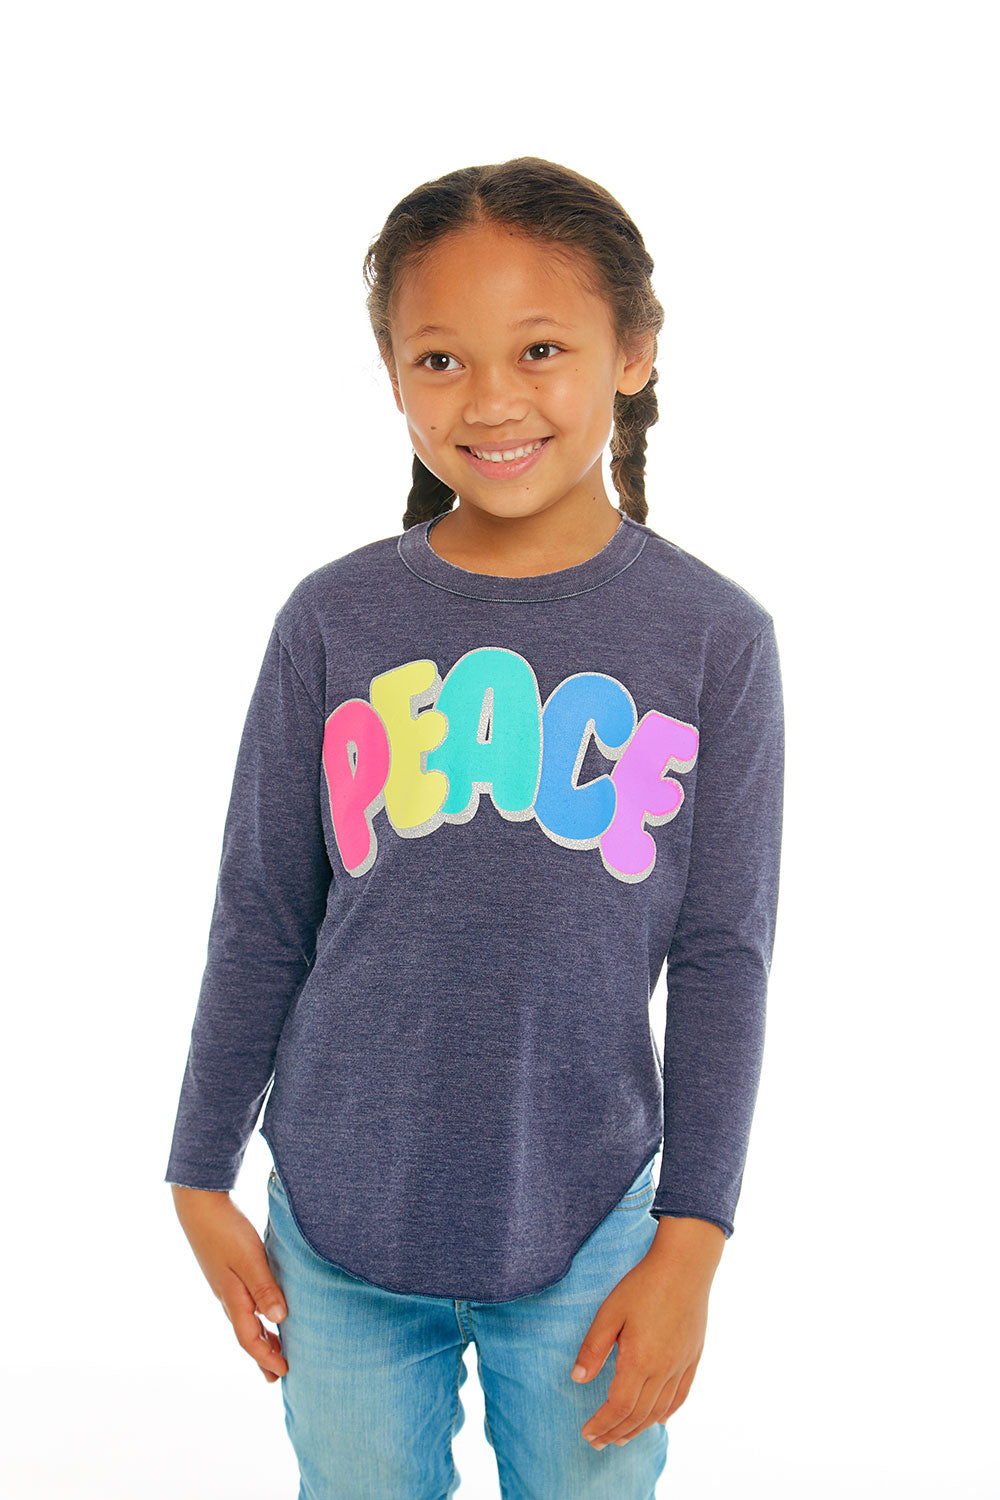 Peace, GIRLS, chaserbrand.com,chaser clothing,chaser apparel,chaser los angeles